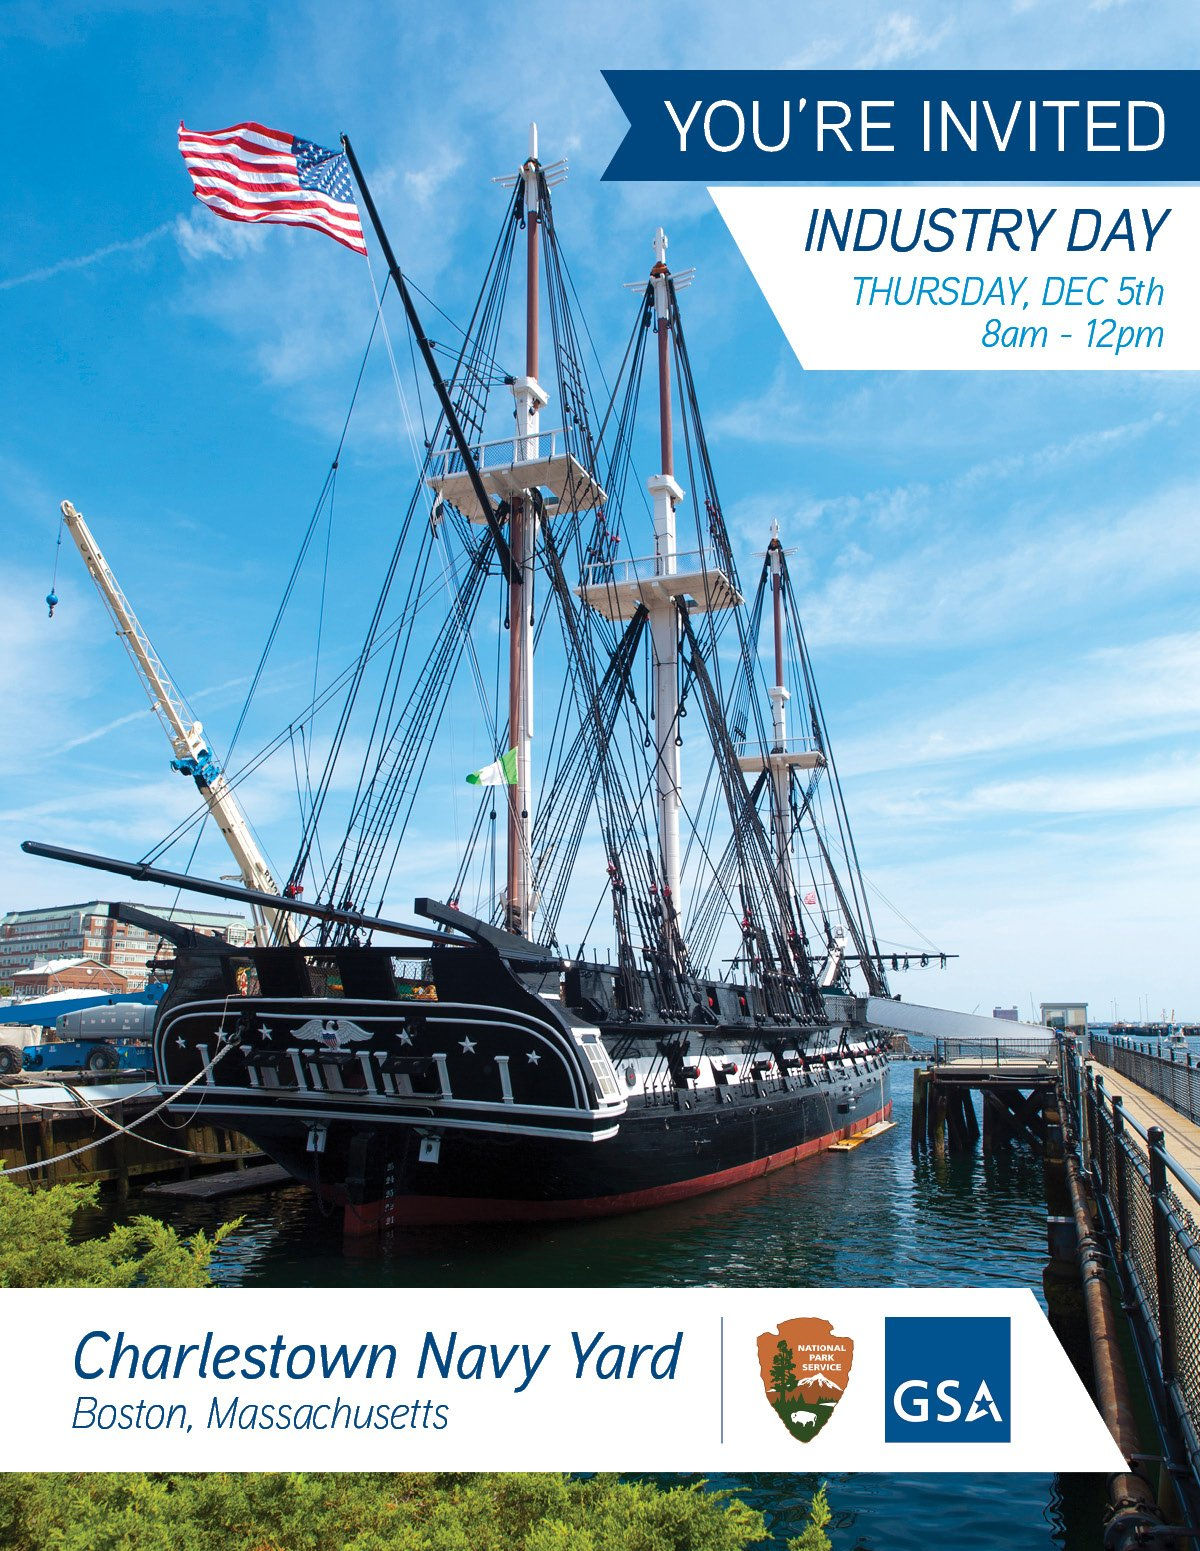 Industry Day invitation_Charlestown Navy Yard_12.5.19_masthead with logos